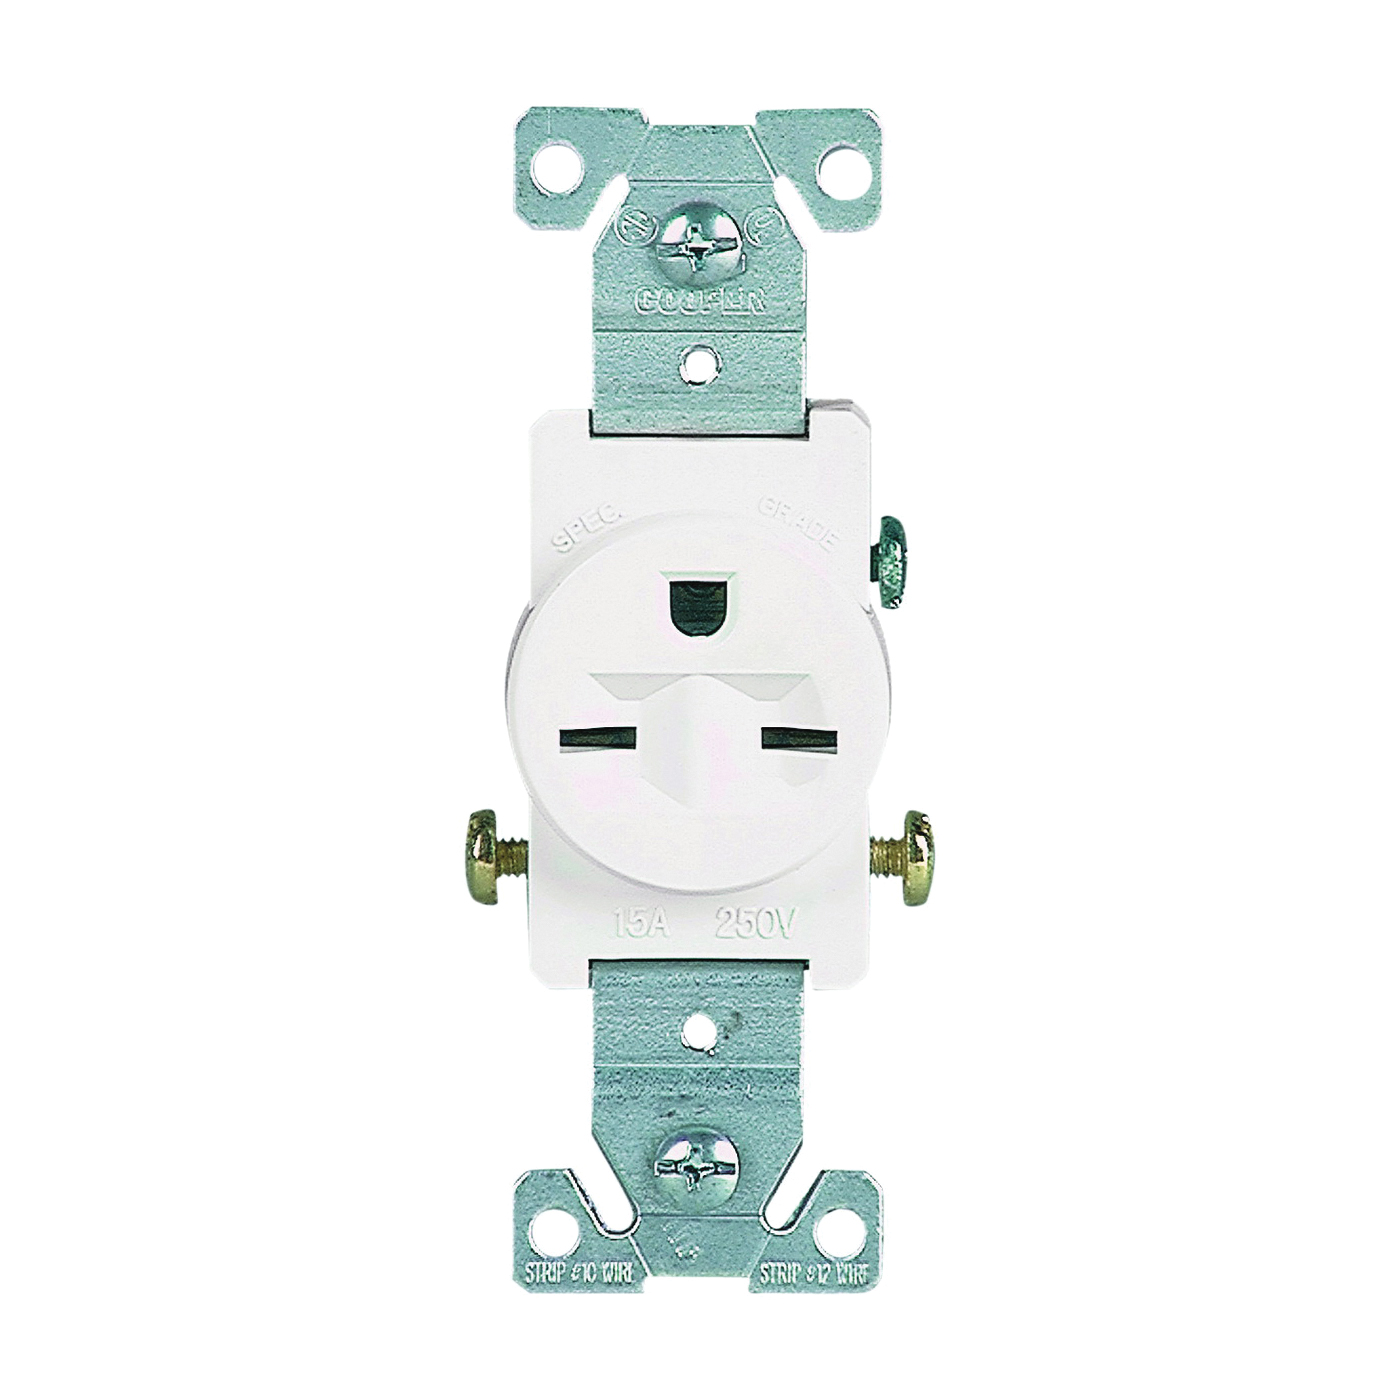 Picture of Eaton Wiring Devices 816W-BOX Single Receptacle, 2-Pole, 250 V, 15 A, Side Wiring, NEMA 6-15R, White